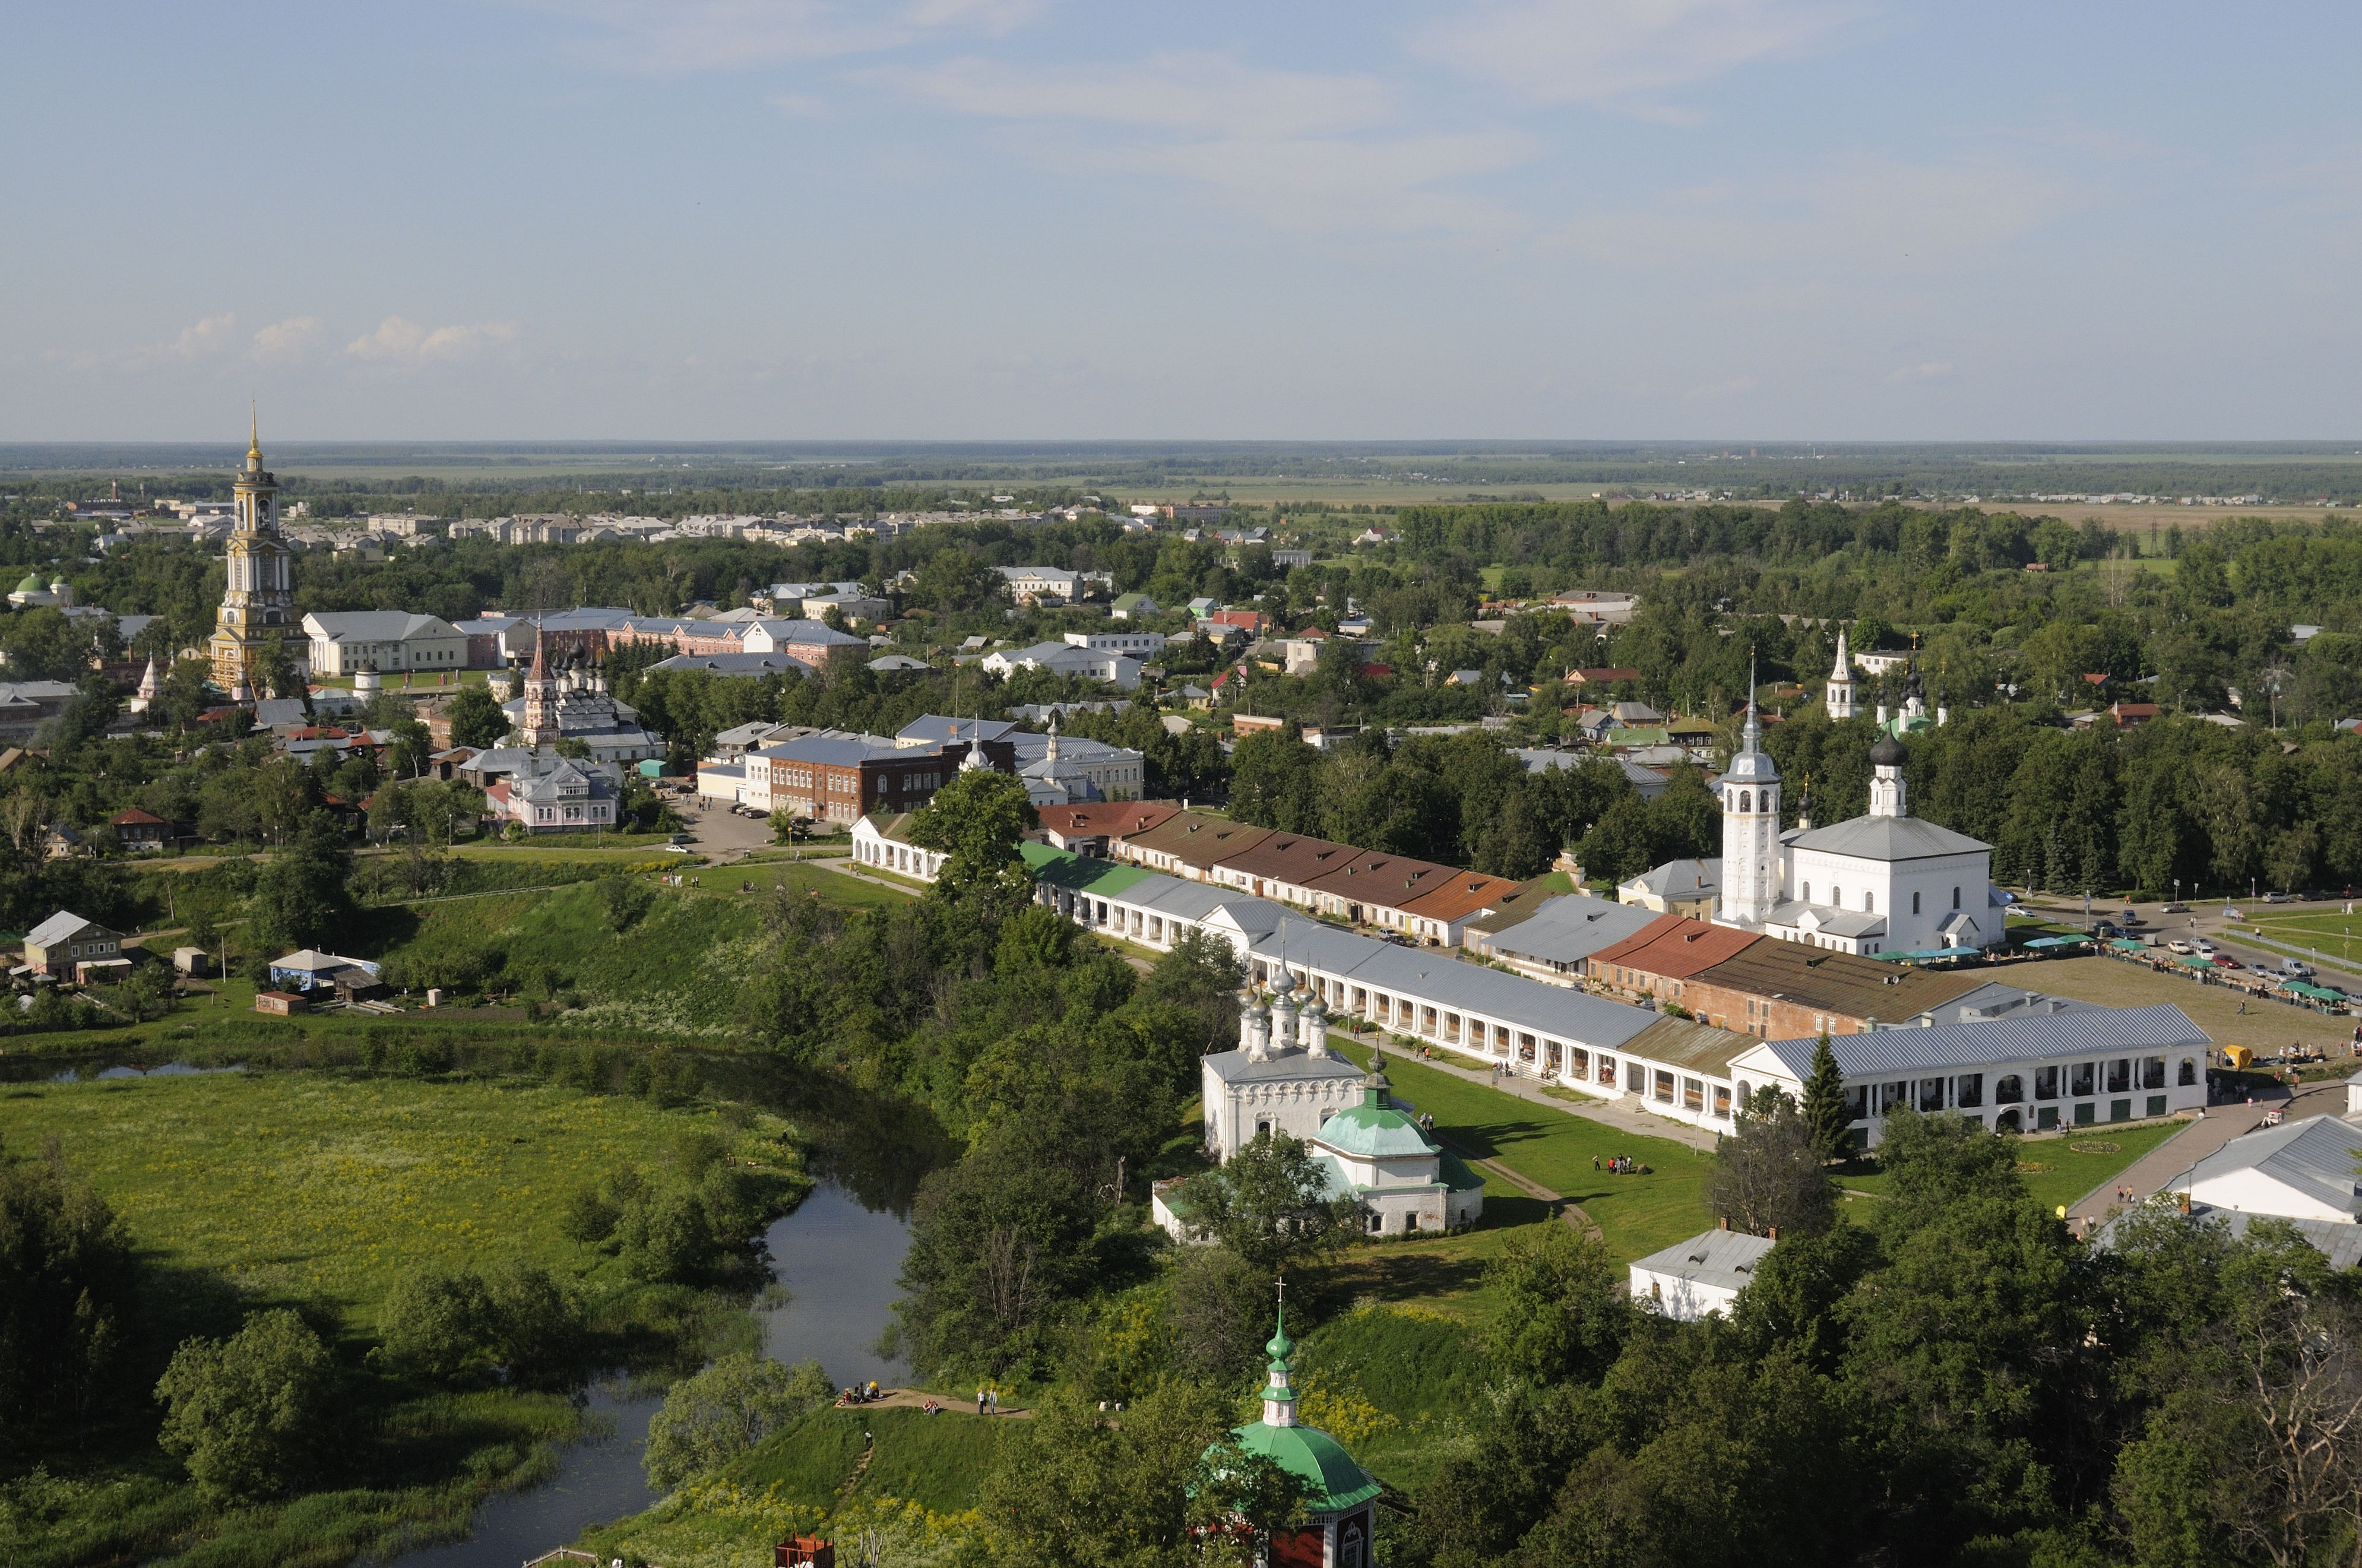 Суздаль (Suzdal), Russia - Monterrasol small group tours to Russia. Travel agency offers small group car tours to see Russia in Russia. Order small group tour to Russia with departure date on request.